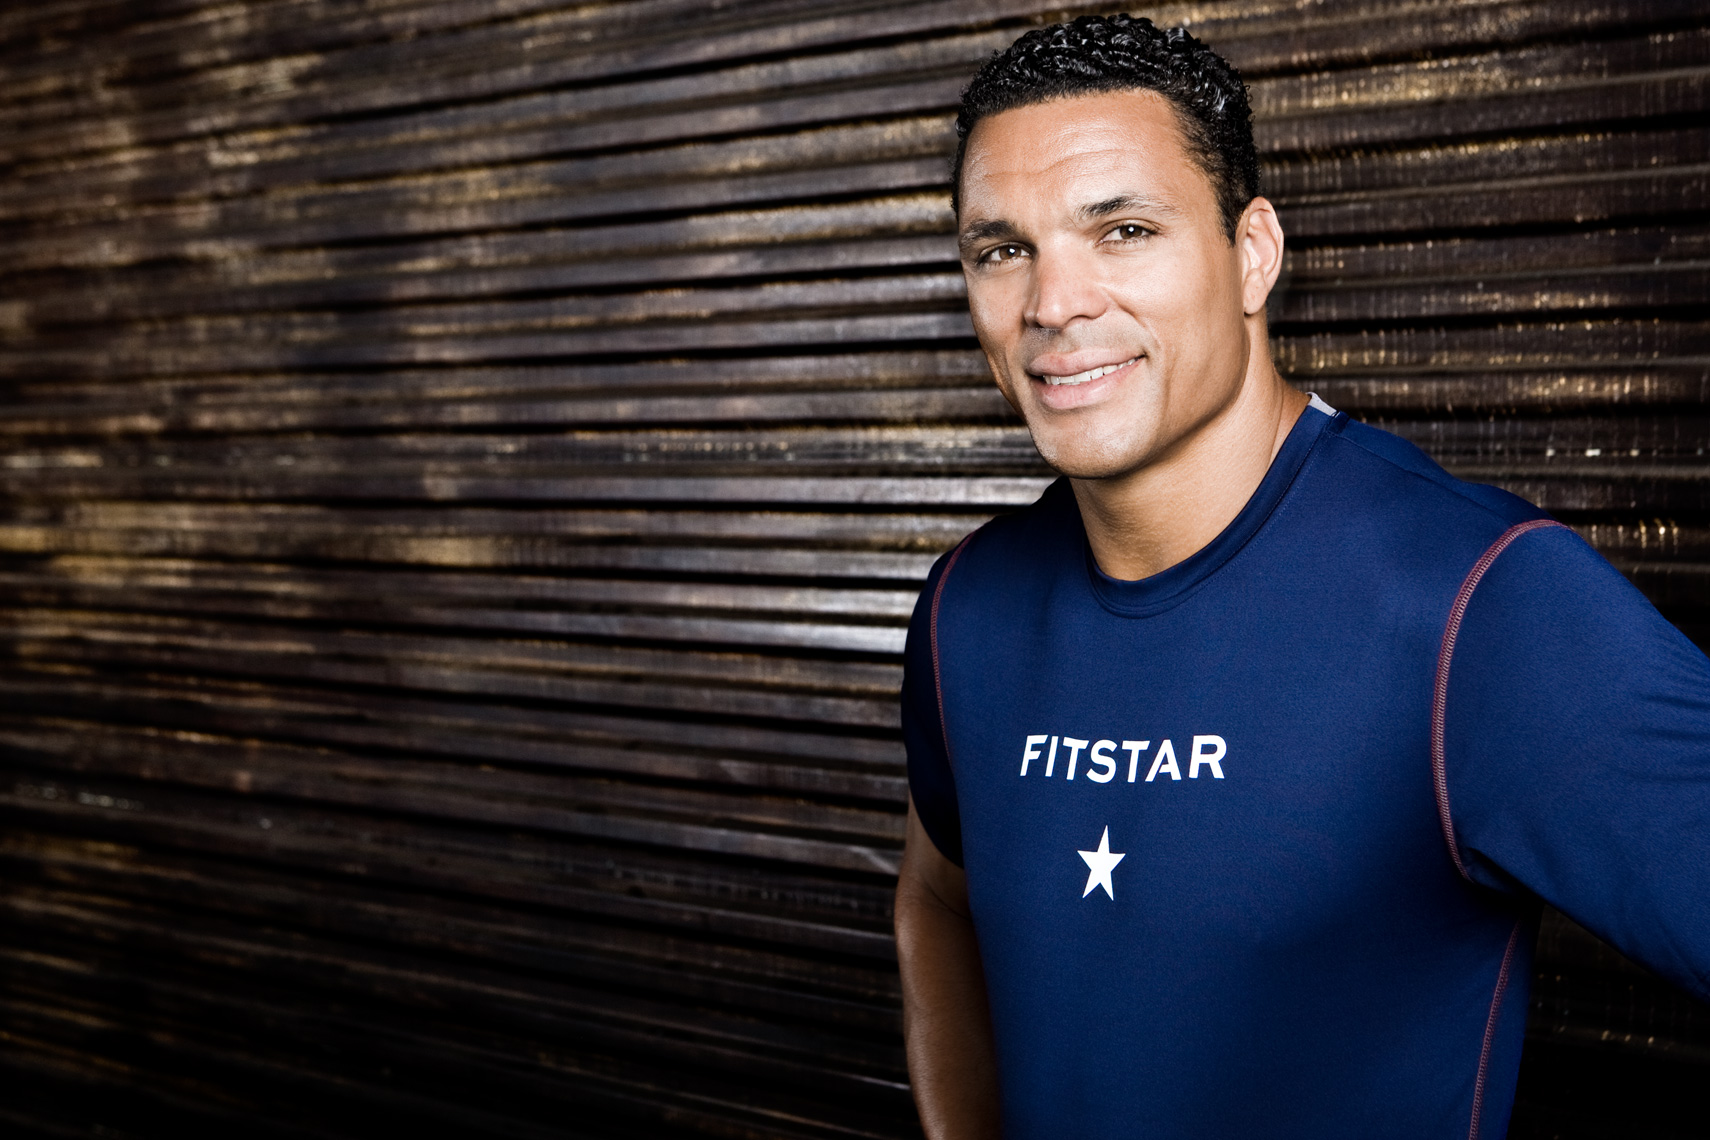 Los Angeles Sports Photography, Michael Brian, athlete, Tony Gonzalez, NFL, tight end, Football, Fitstar, Kansas City Chiefs, Atlanta Falcons